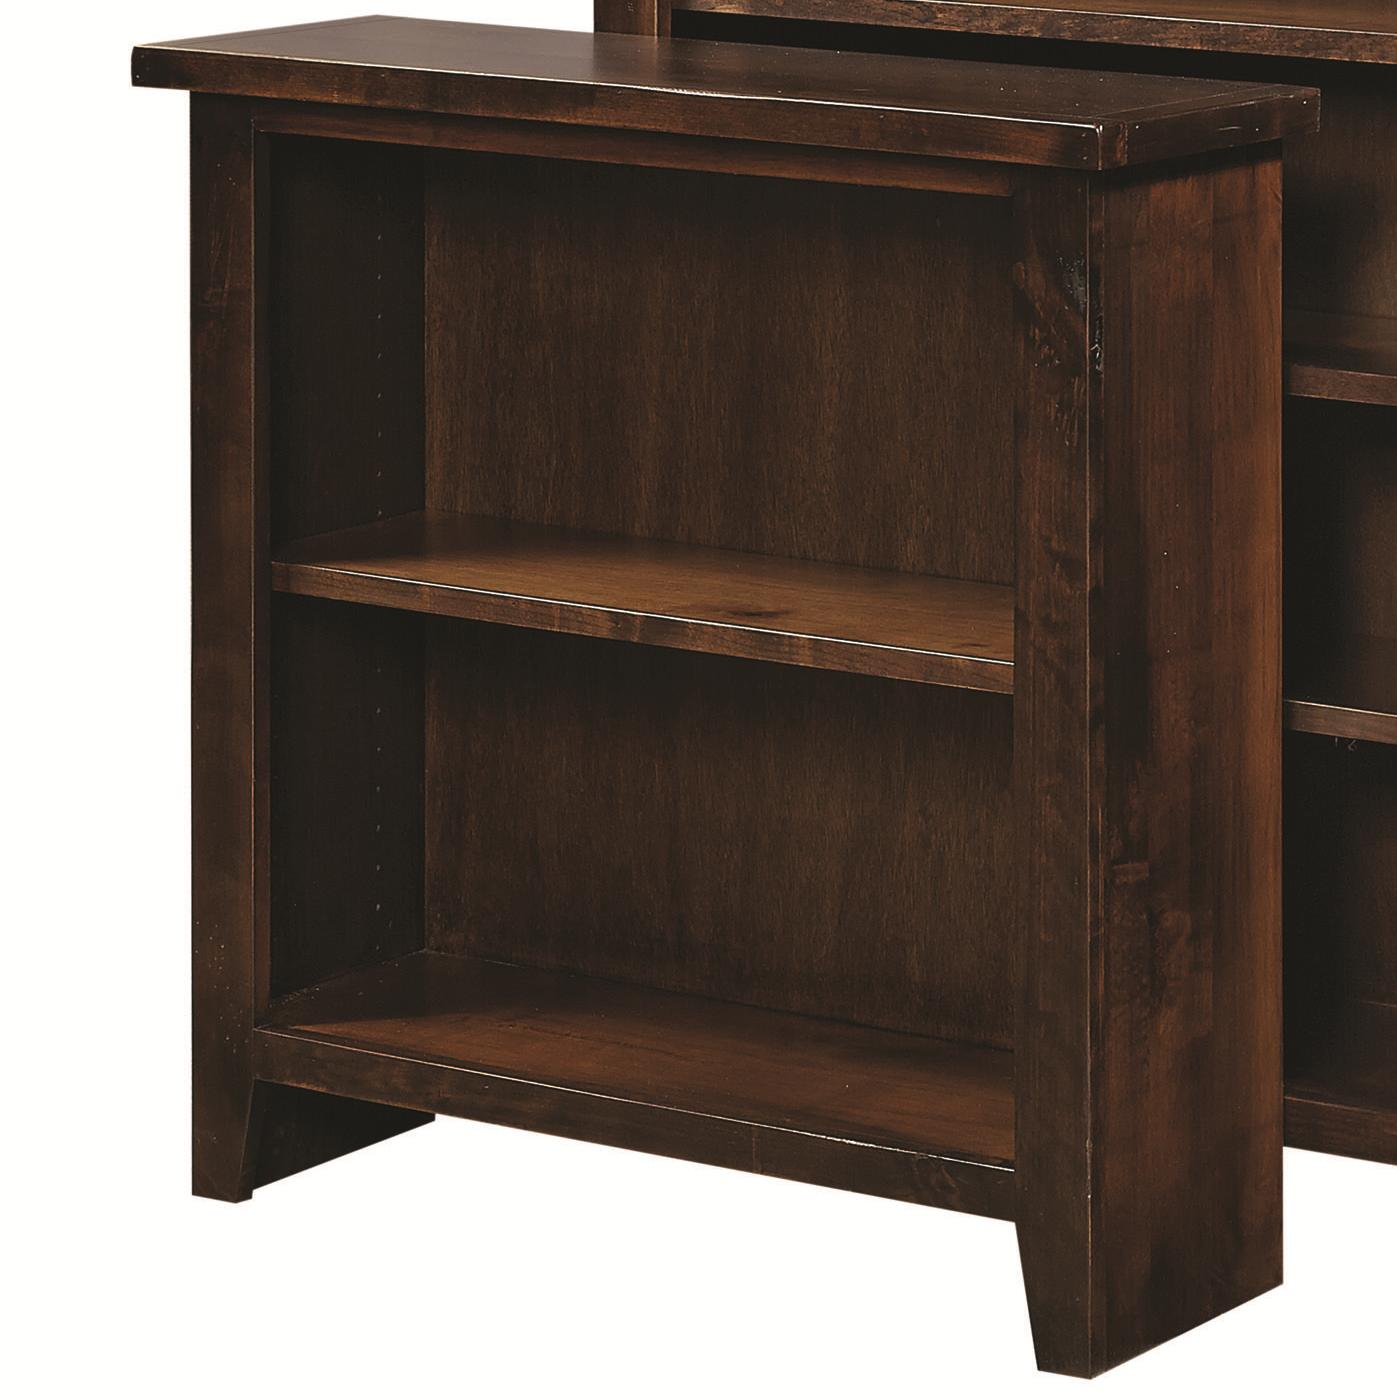 "Aspenhome Alder Grove 36"" Height Bookcase with 2 Shelves - Item Number: DG3436-TOB"